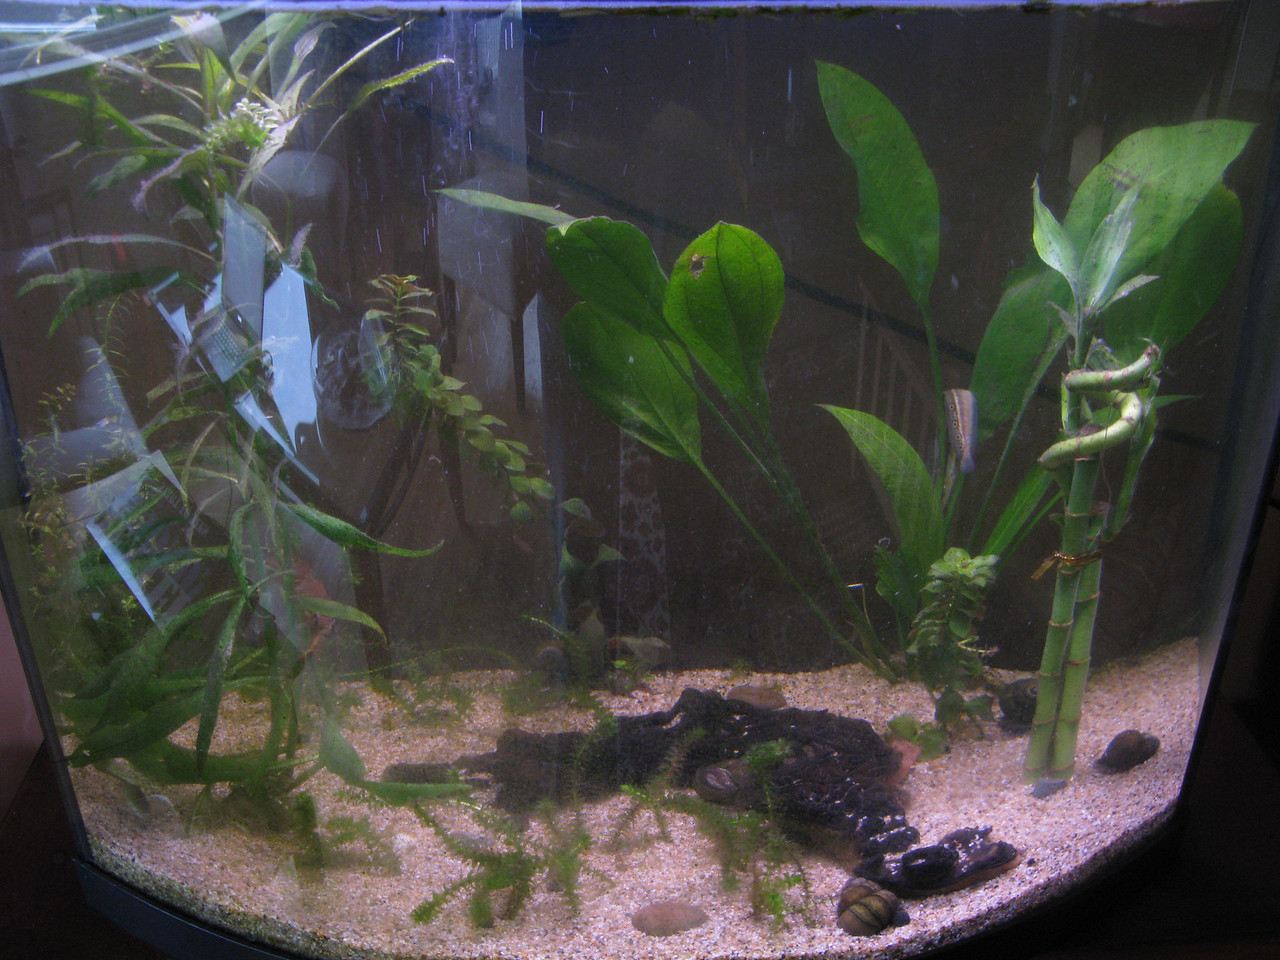 More than just a fish tank, This tank is filled with native hand cought critters. Including, small mouth Bass, 2 Torrent Sculpin, Snails, 30 freshwater clams, 2 crayfish.